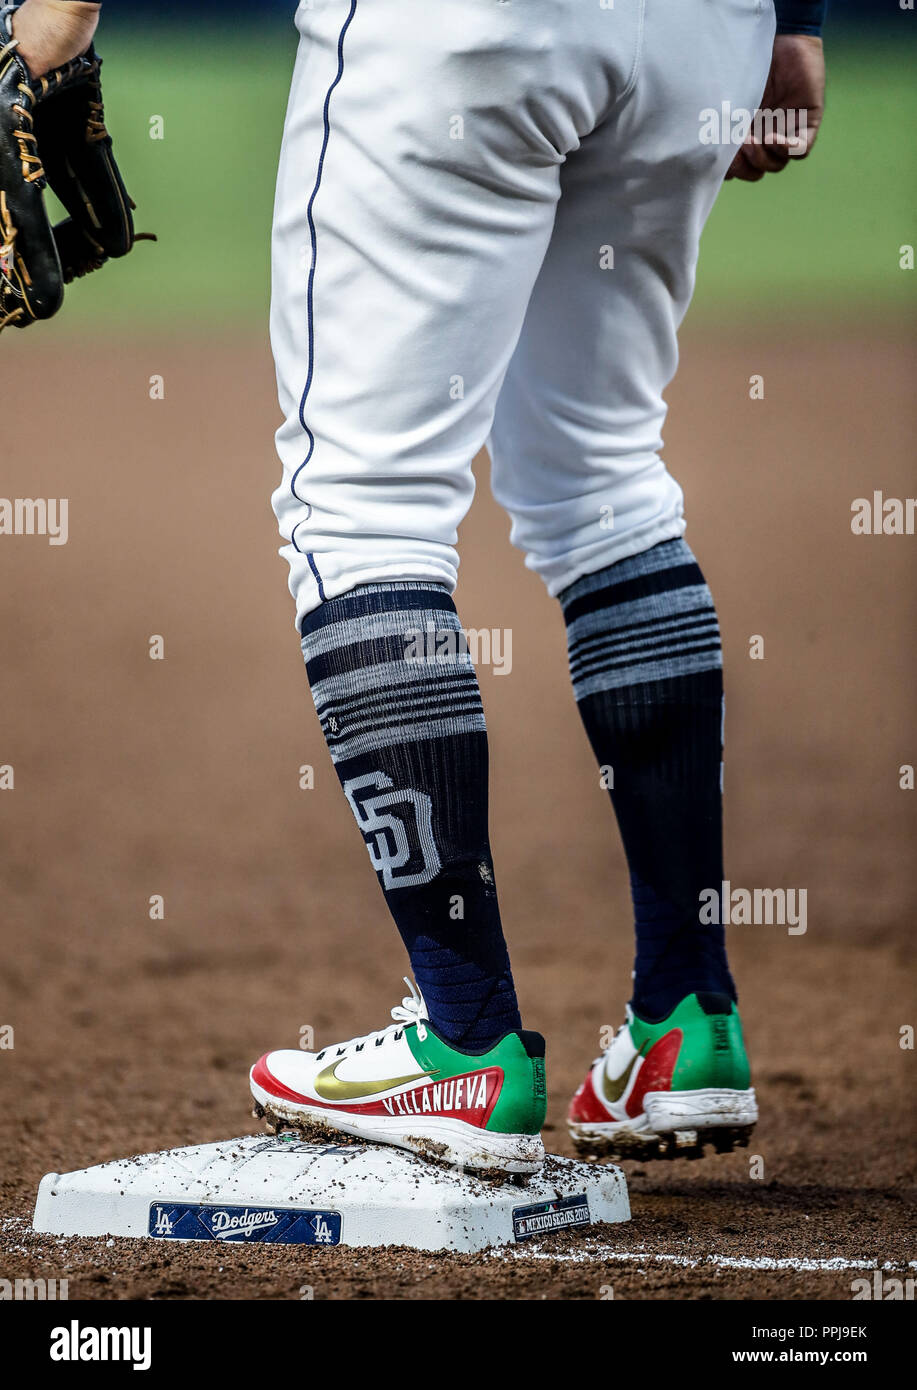 spikes de Christian Villanueva con los colores y la bandera de mexico.  Baseball action during the Los Angeles Dodgers game against San Diego Padres,  - Stock Image